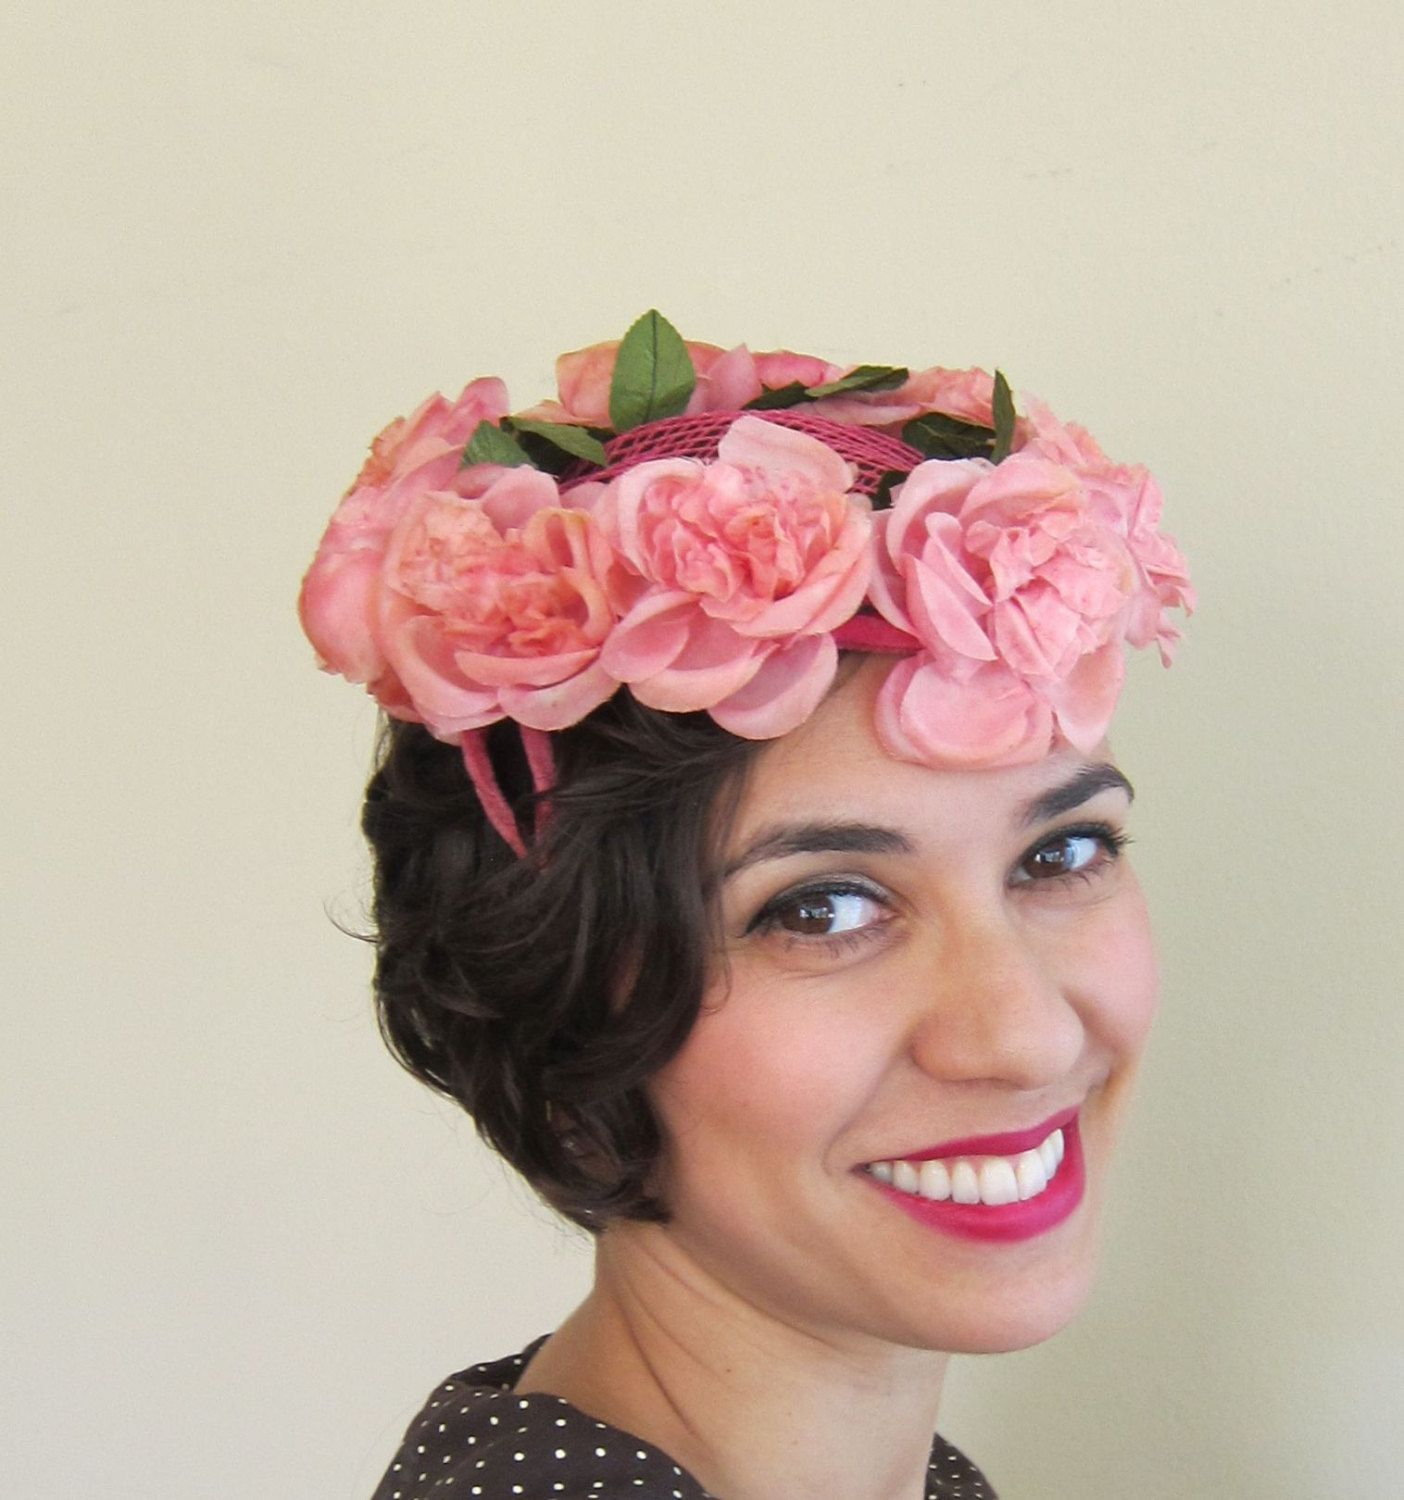 407e21e21a0f1d Vintage 1950s Pink Flower Hat / 50s Floral Crown Wreath Cocktail Hat  Fascinator by BasyaBerkman on Etsy